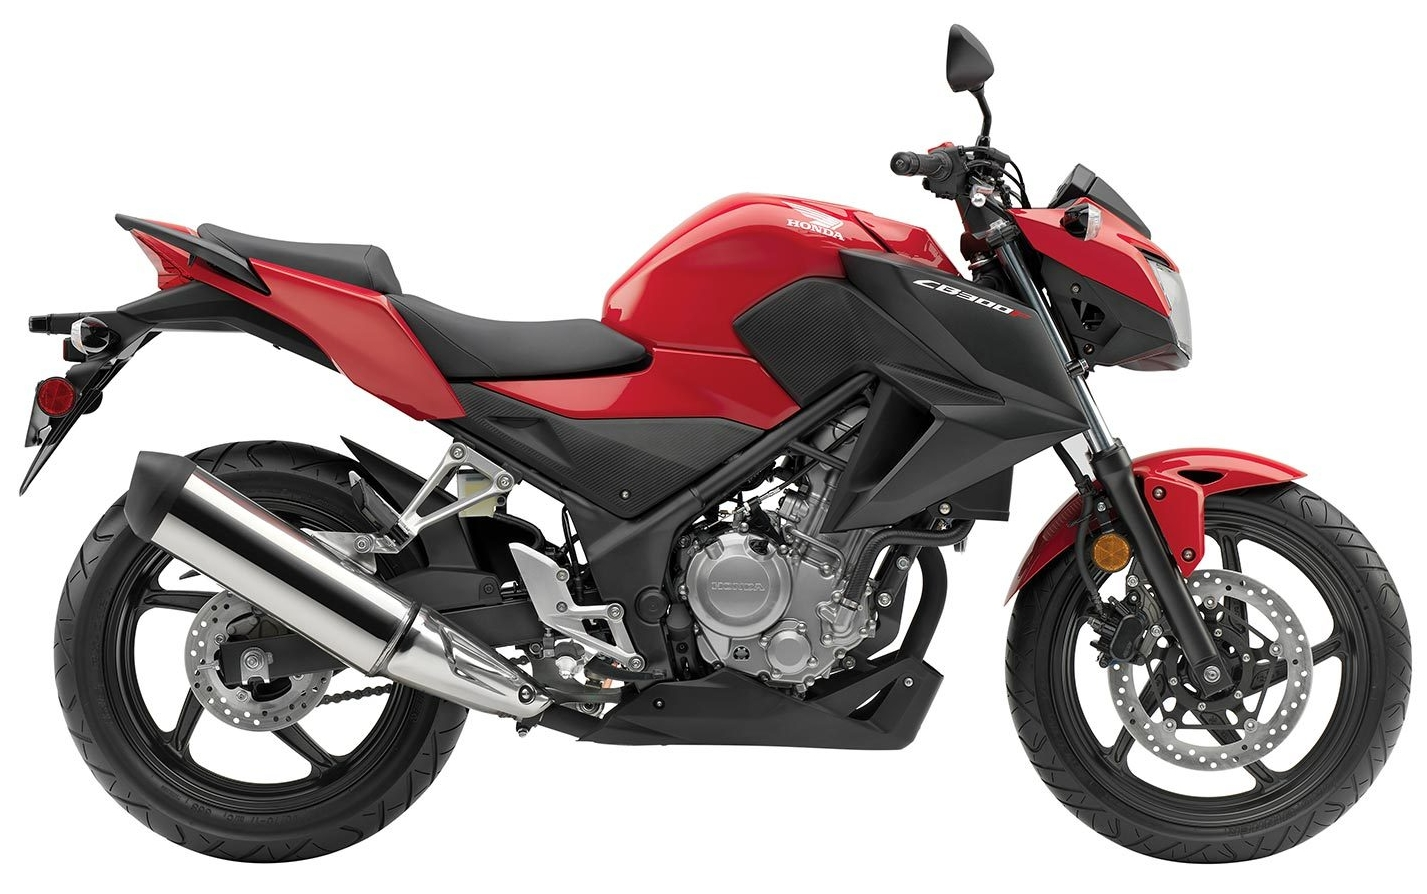 New Honda Cbr 300r Bike Review Price Features Photo